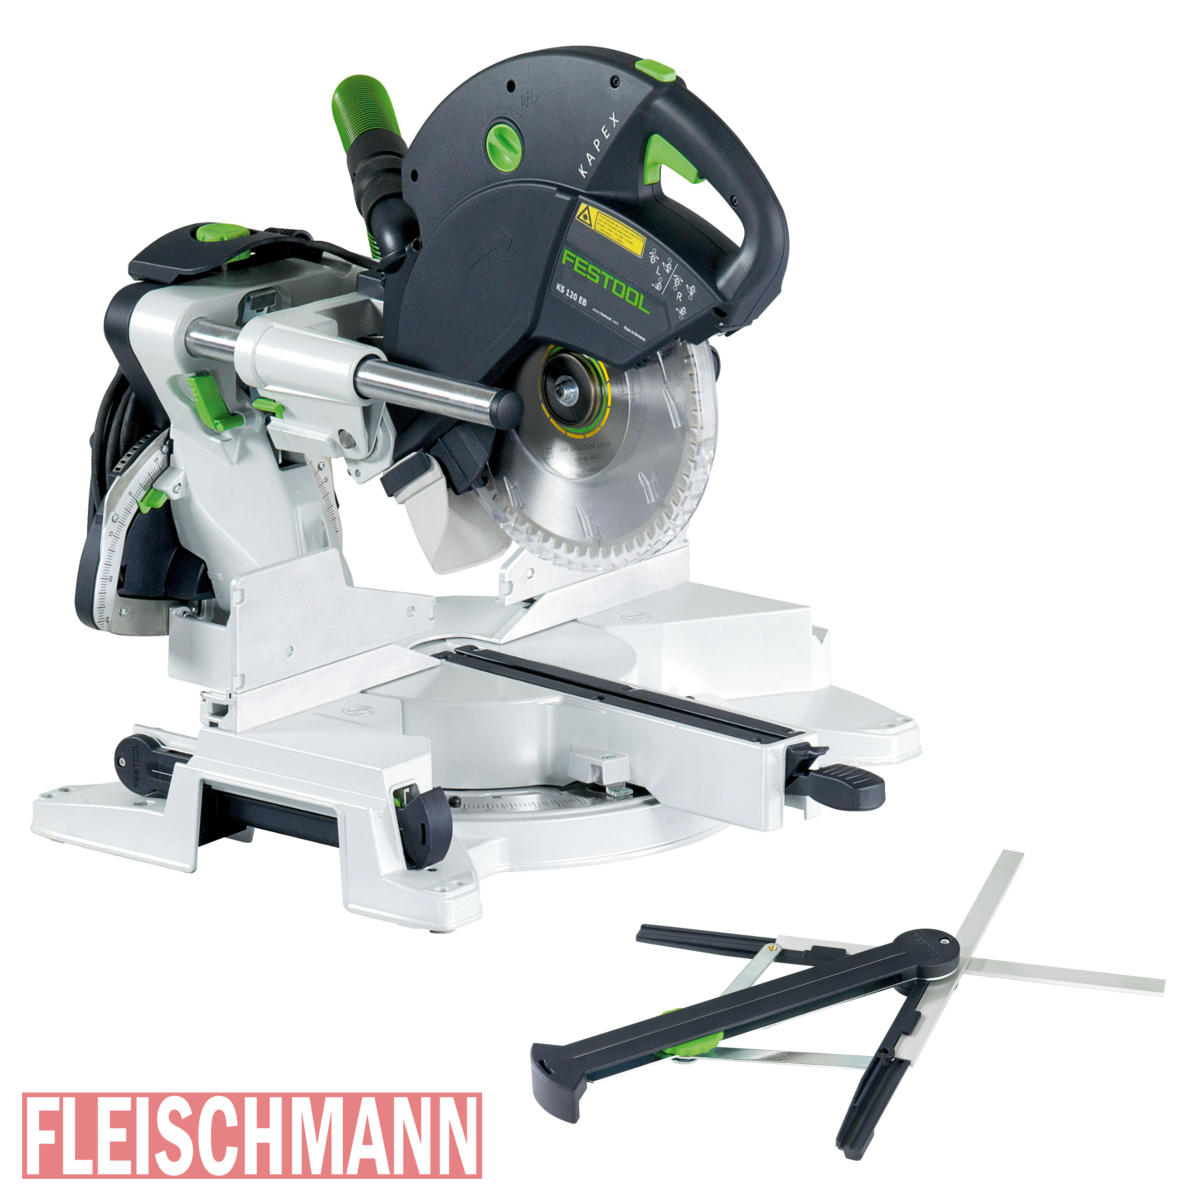 kapp zugs ge ks 120 eb kapex 561283 kapp leistens gen s gen festool fleischmann. Black Bedroom Furniture Sets. Home Design Ideas